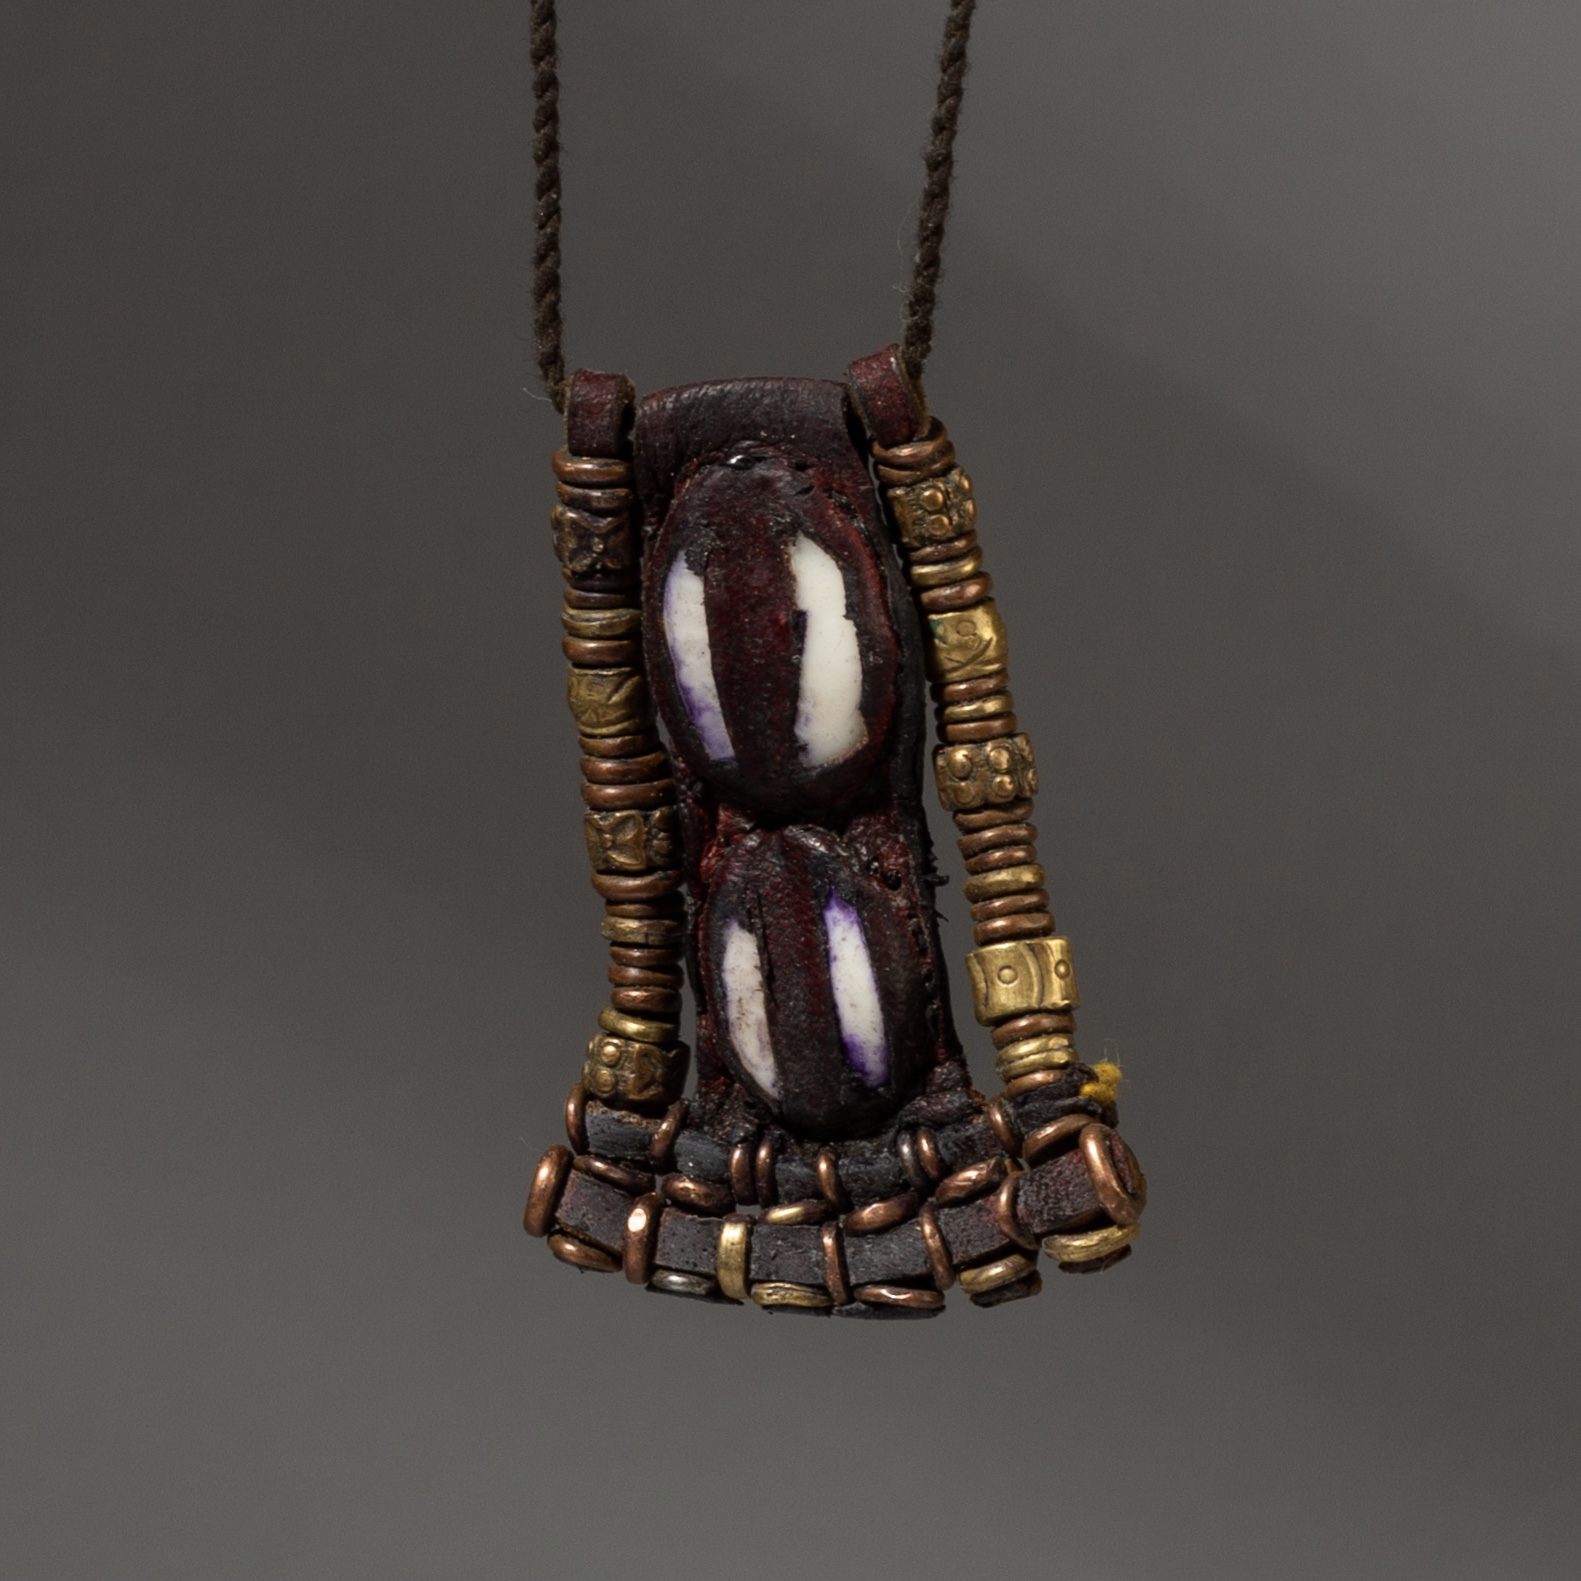 ( Sold timtim ) -WAADABE LEATHER NECKLACE FROM THE SAHARA ( No 3235 )